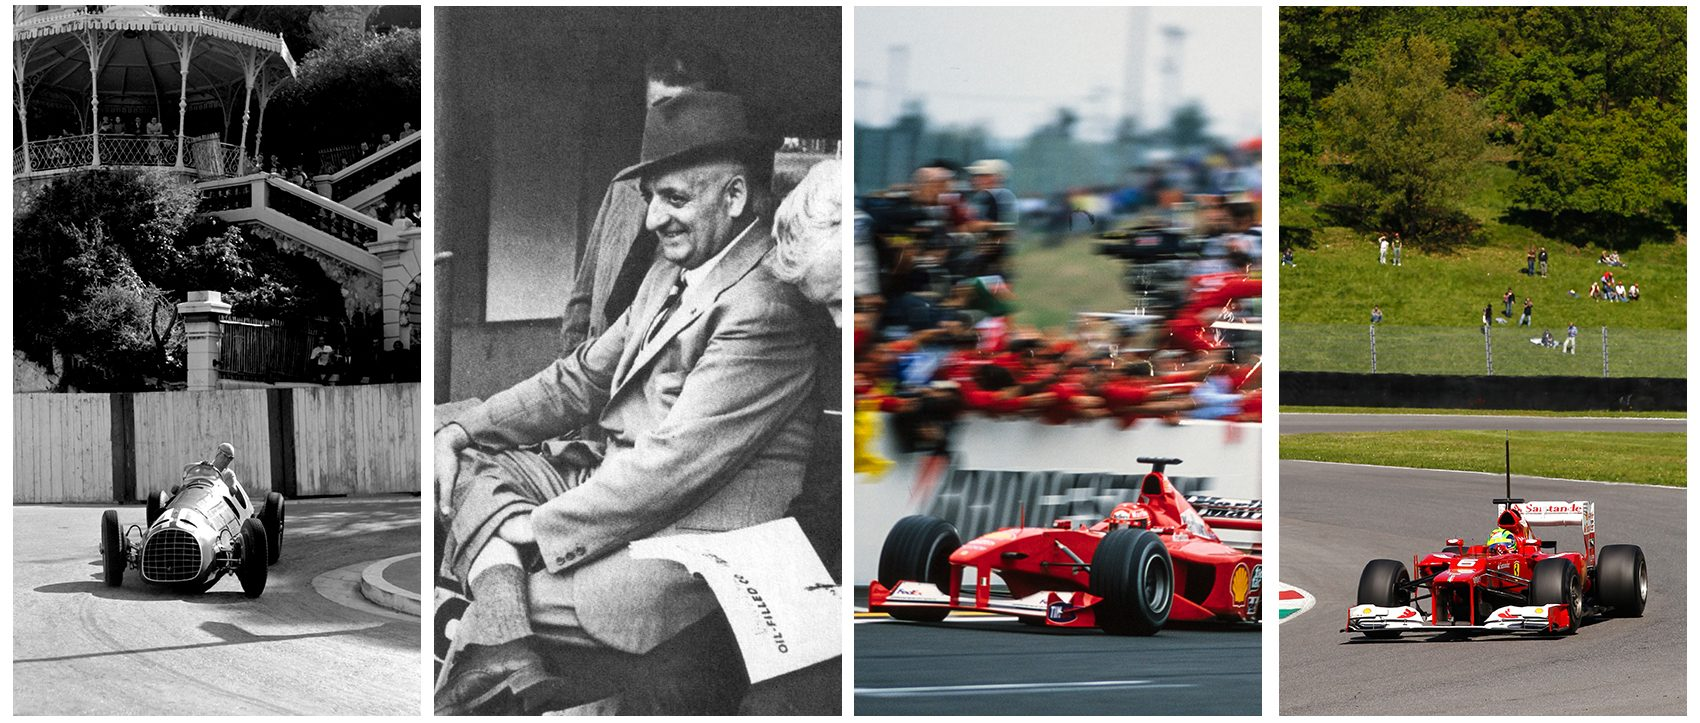 From 1 to 1000th: The Ferrari Journey (Part 3)